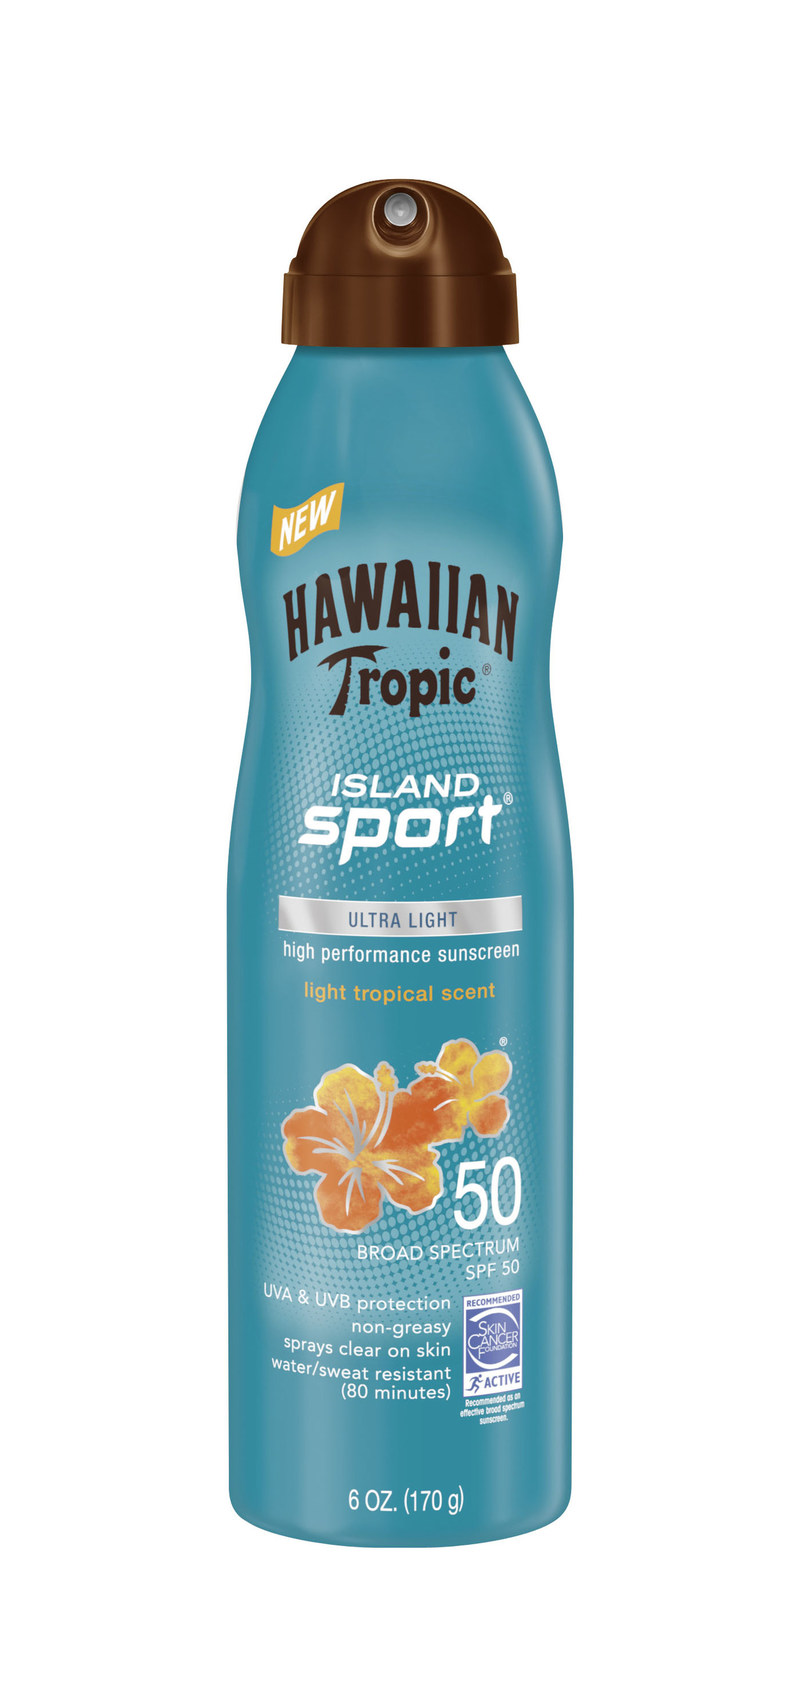 Hawaiian Tropic® Island Sport® C-Spray Sunscreen SPF 50